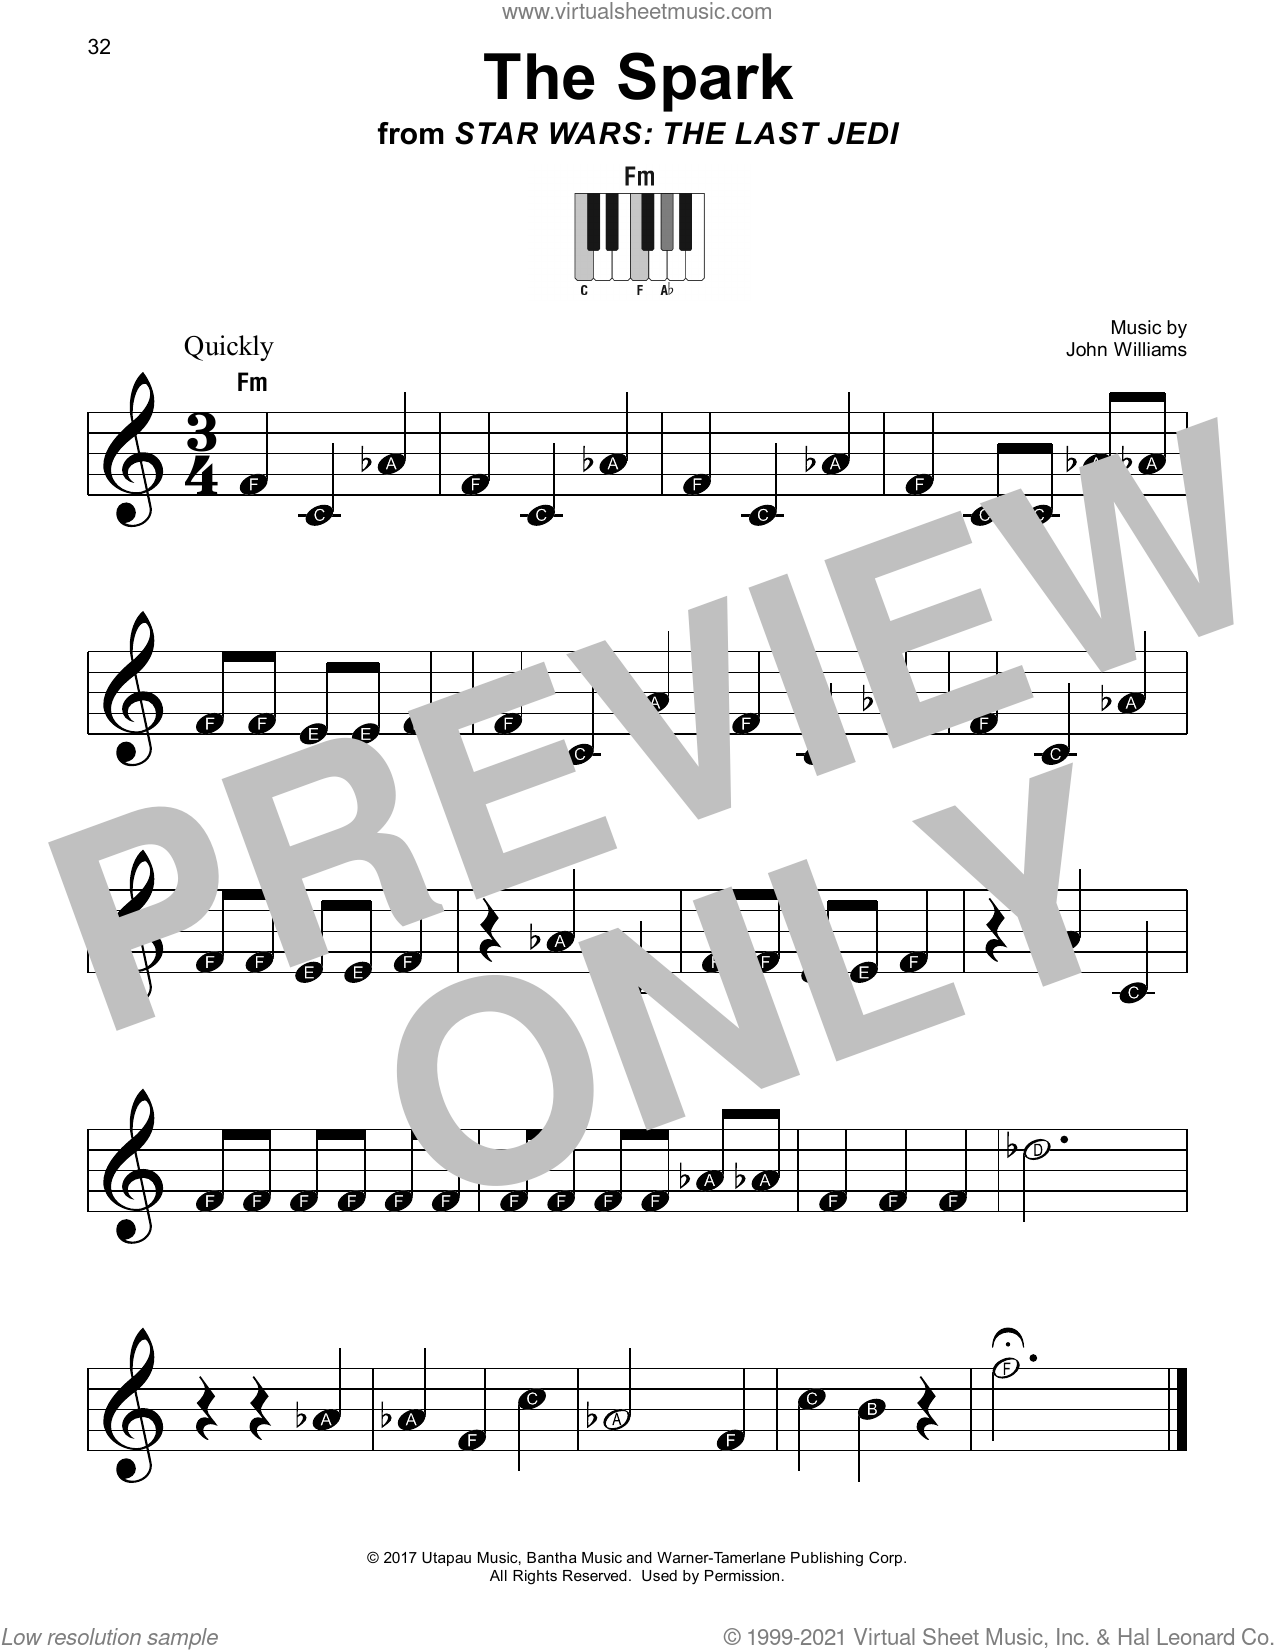 The Spark (from Star Wars: The Last Jedi) sheet music for piano solo by John Williams, beginner skill level